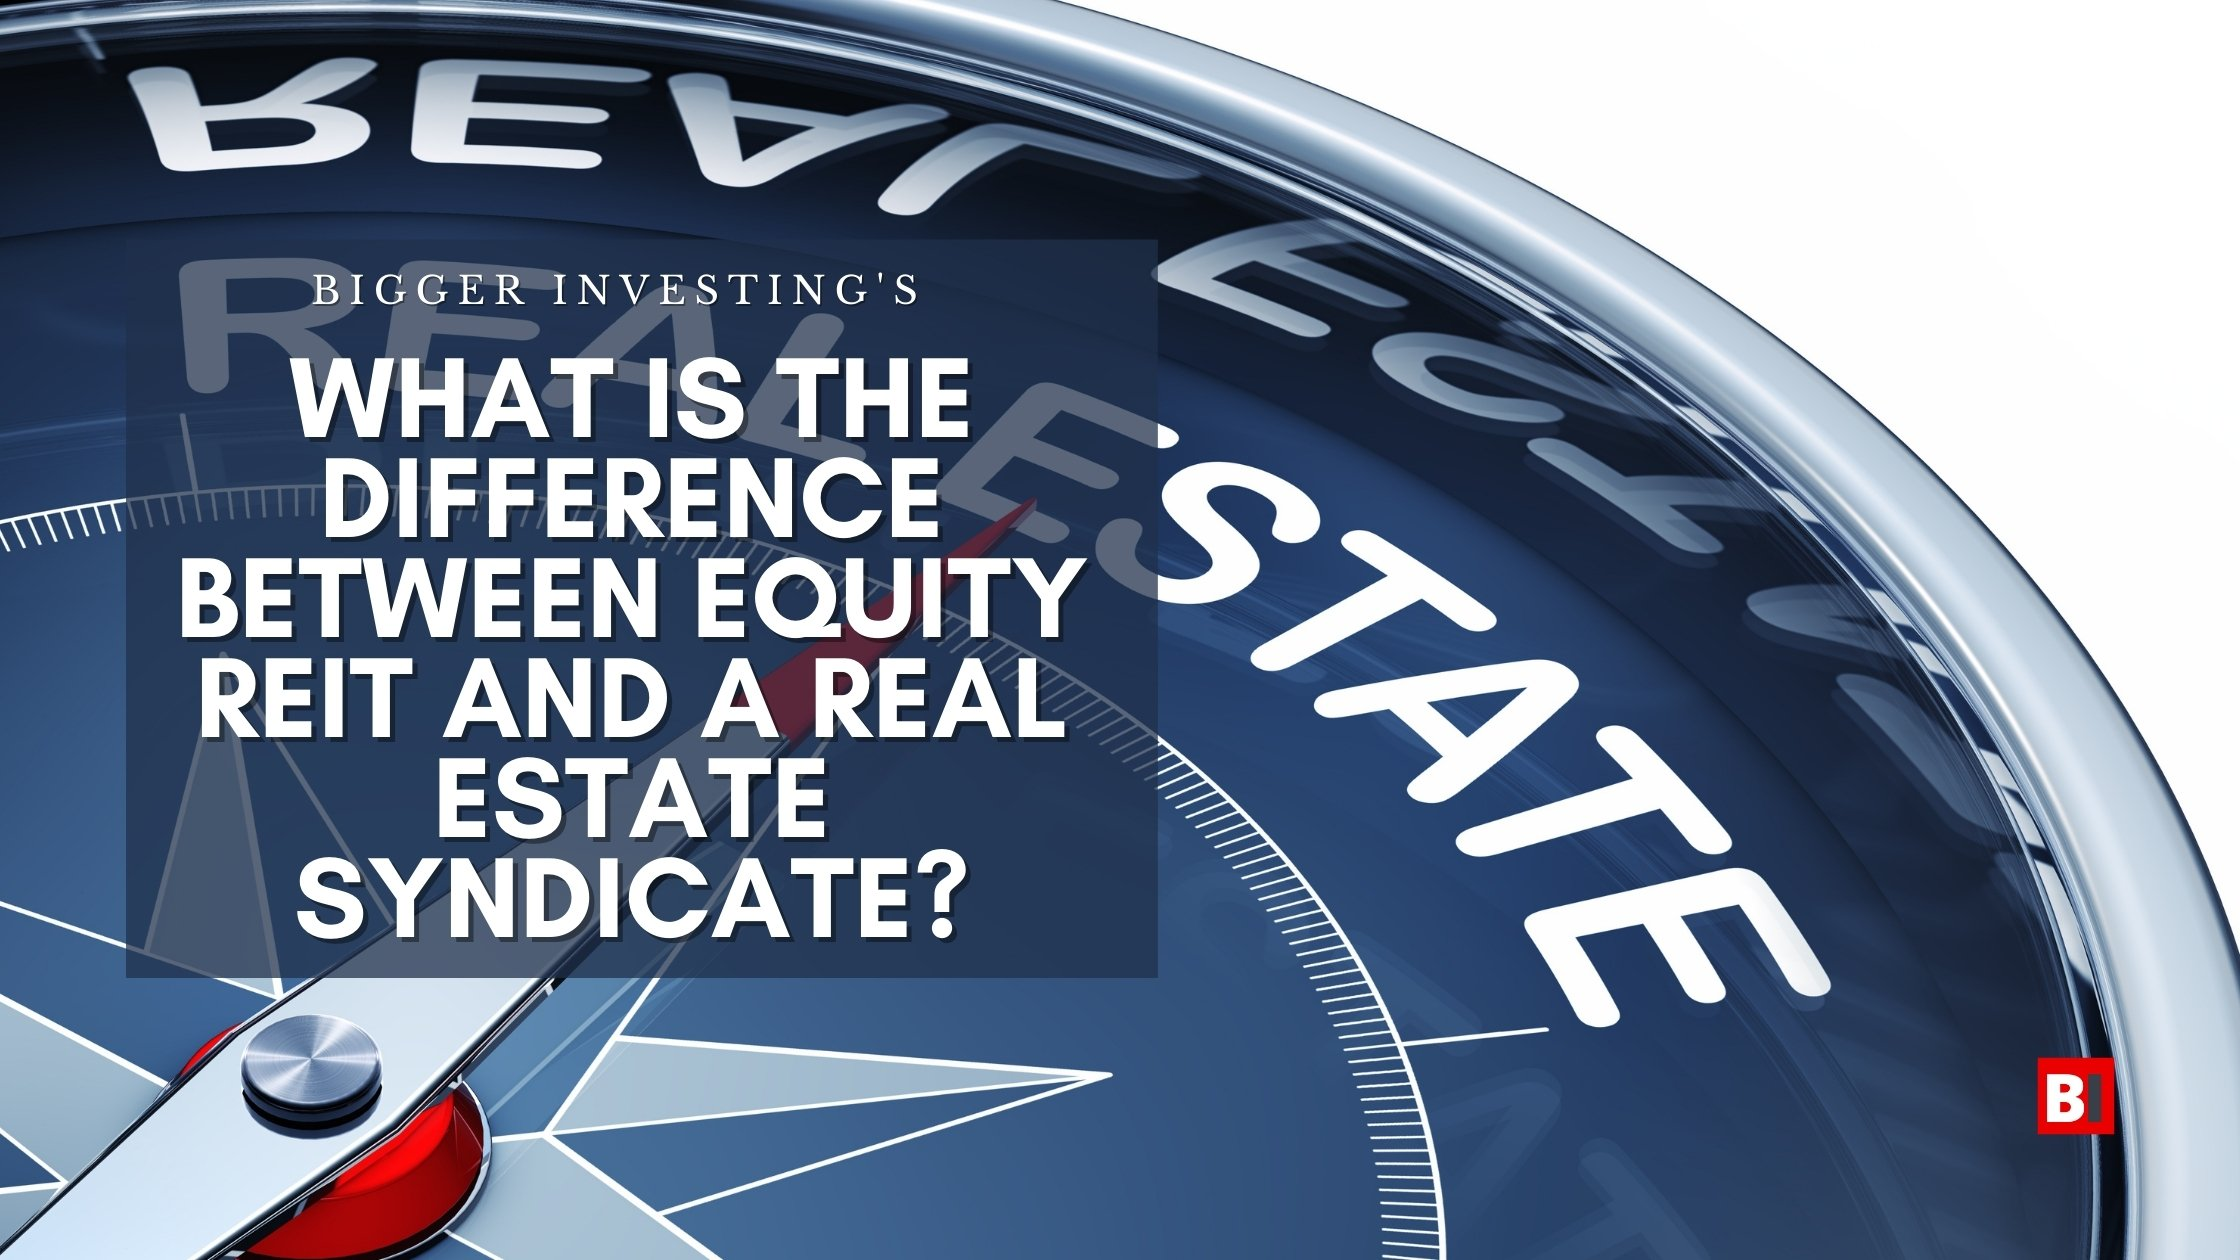 What is the Difference Between Equity REIT and a Real Estate Syndicate?